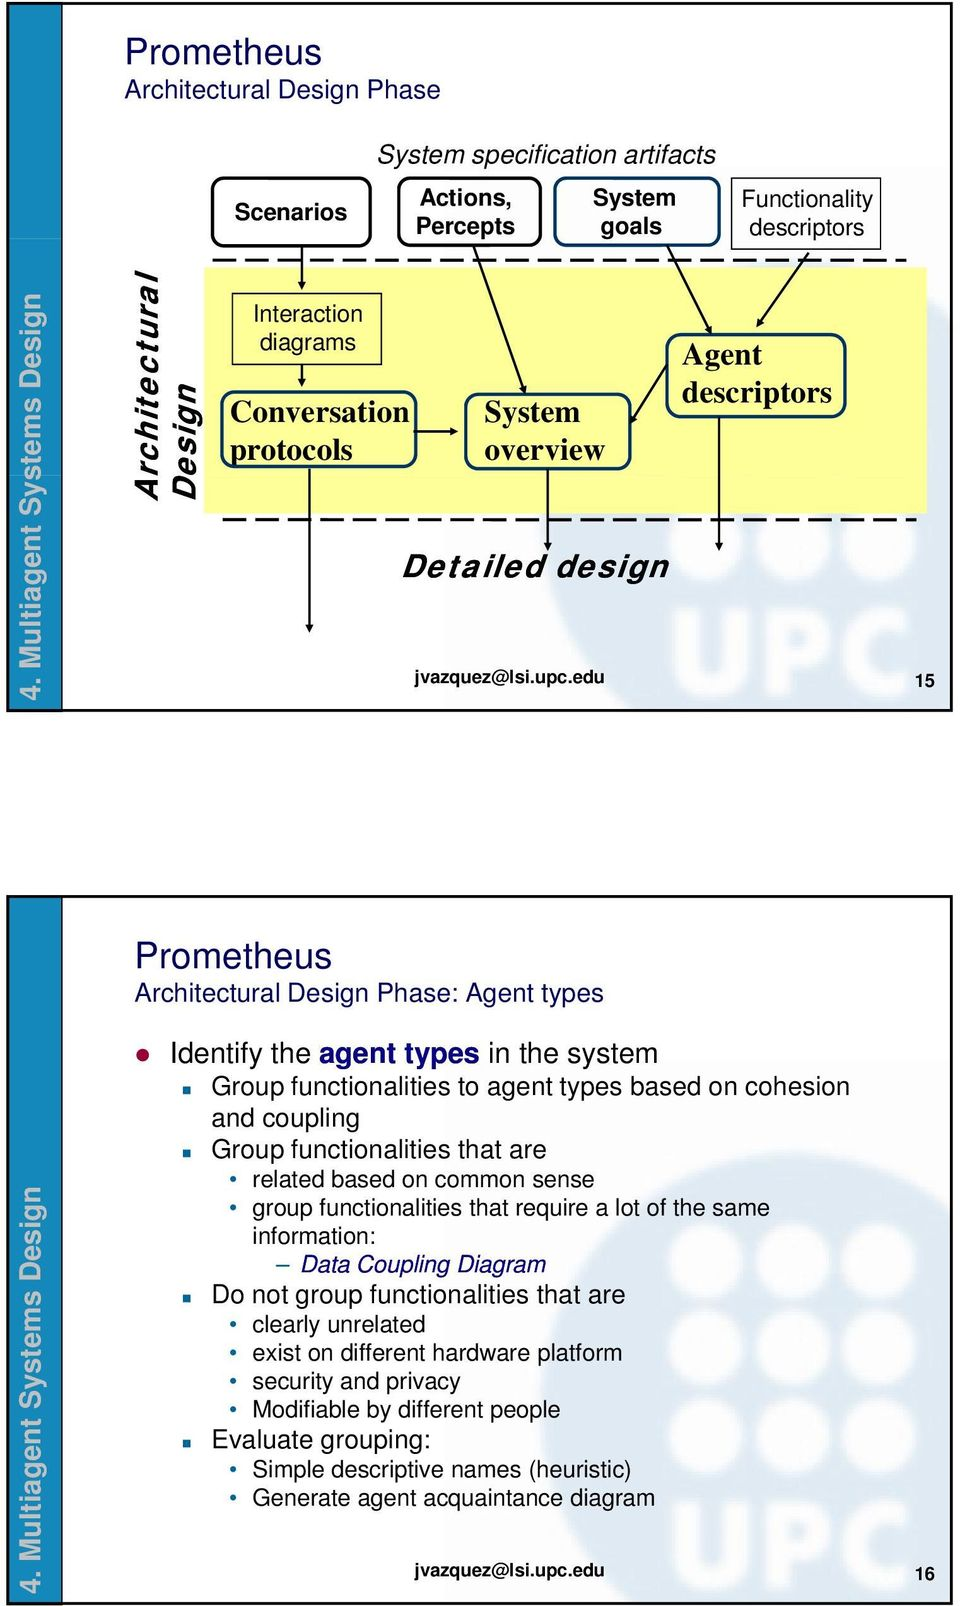 edu 15 Architectural Design Phase: Agent types Identify the agent types in the system Group functionalities to agent types based on cohesion and coupling Group functionalities that are related based